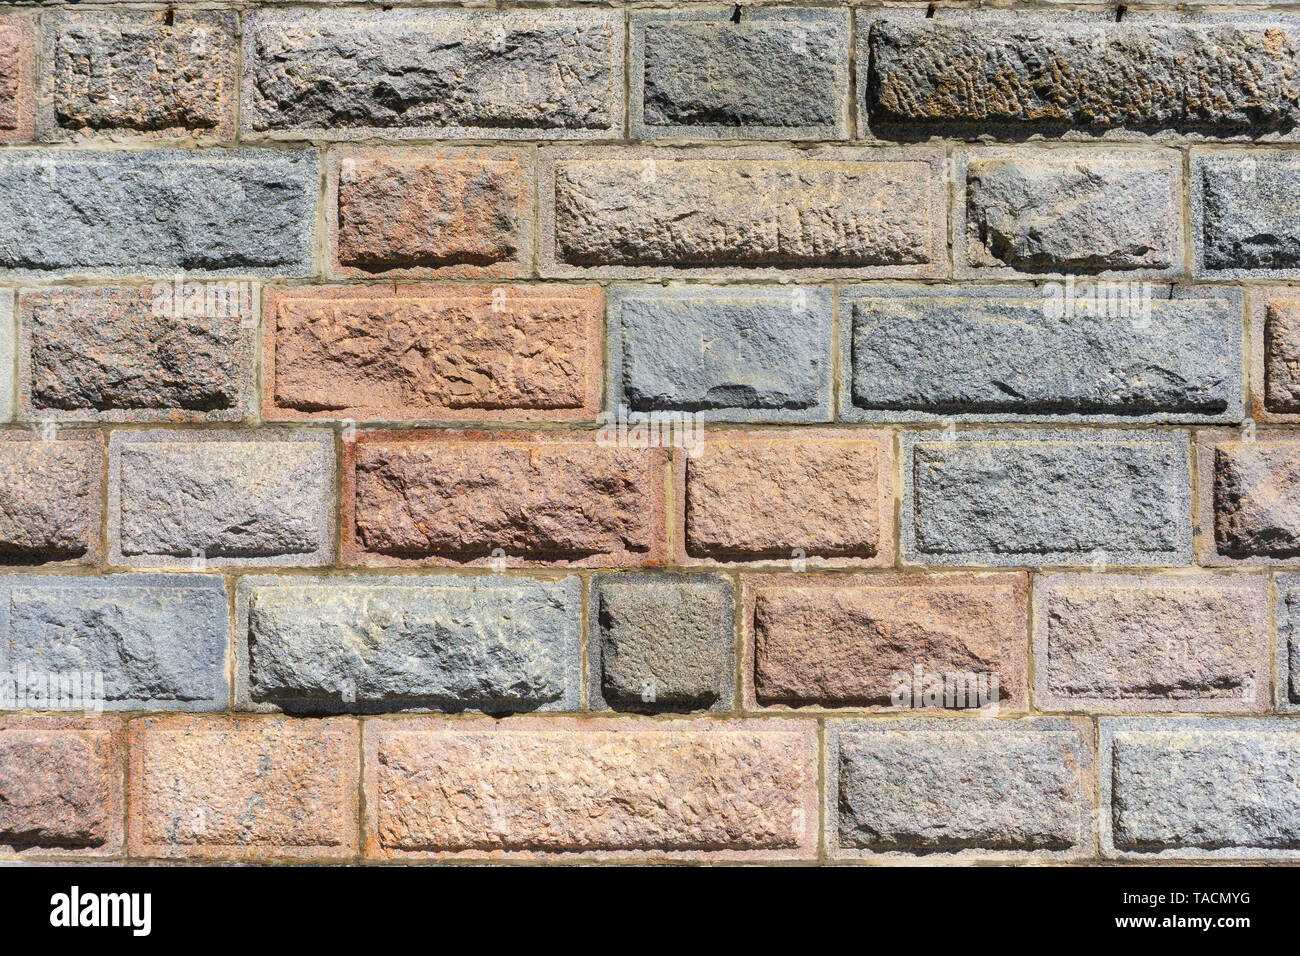 Wall Of Decorative Stone Masonry The Texture And Design Of